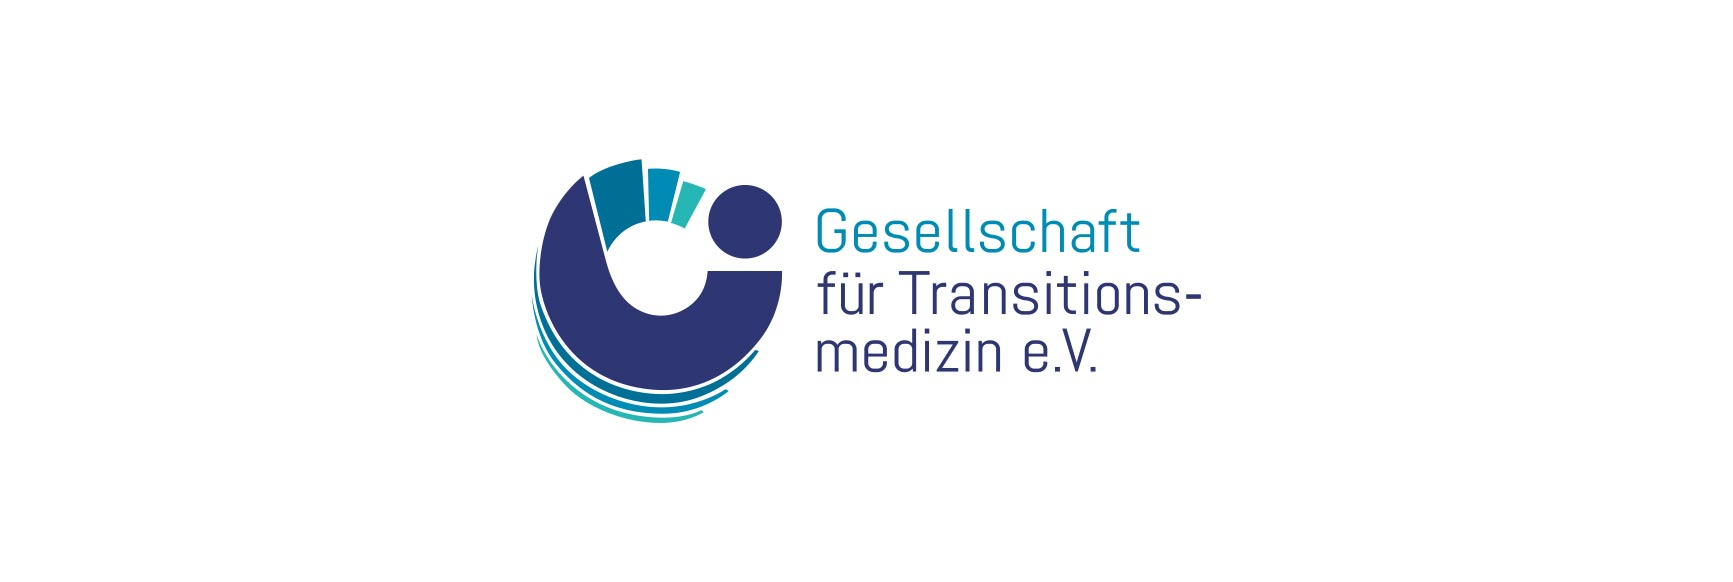 Logo Transitionsmedizin